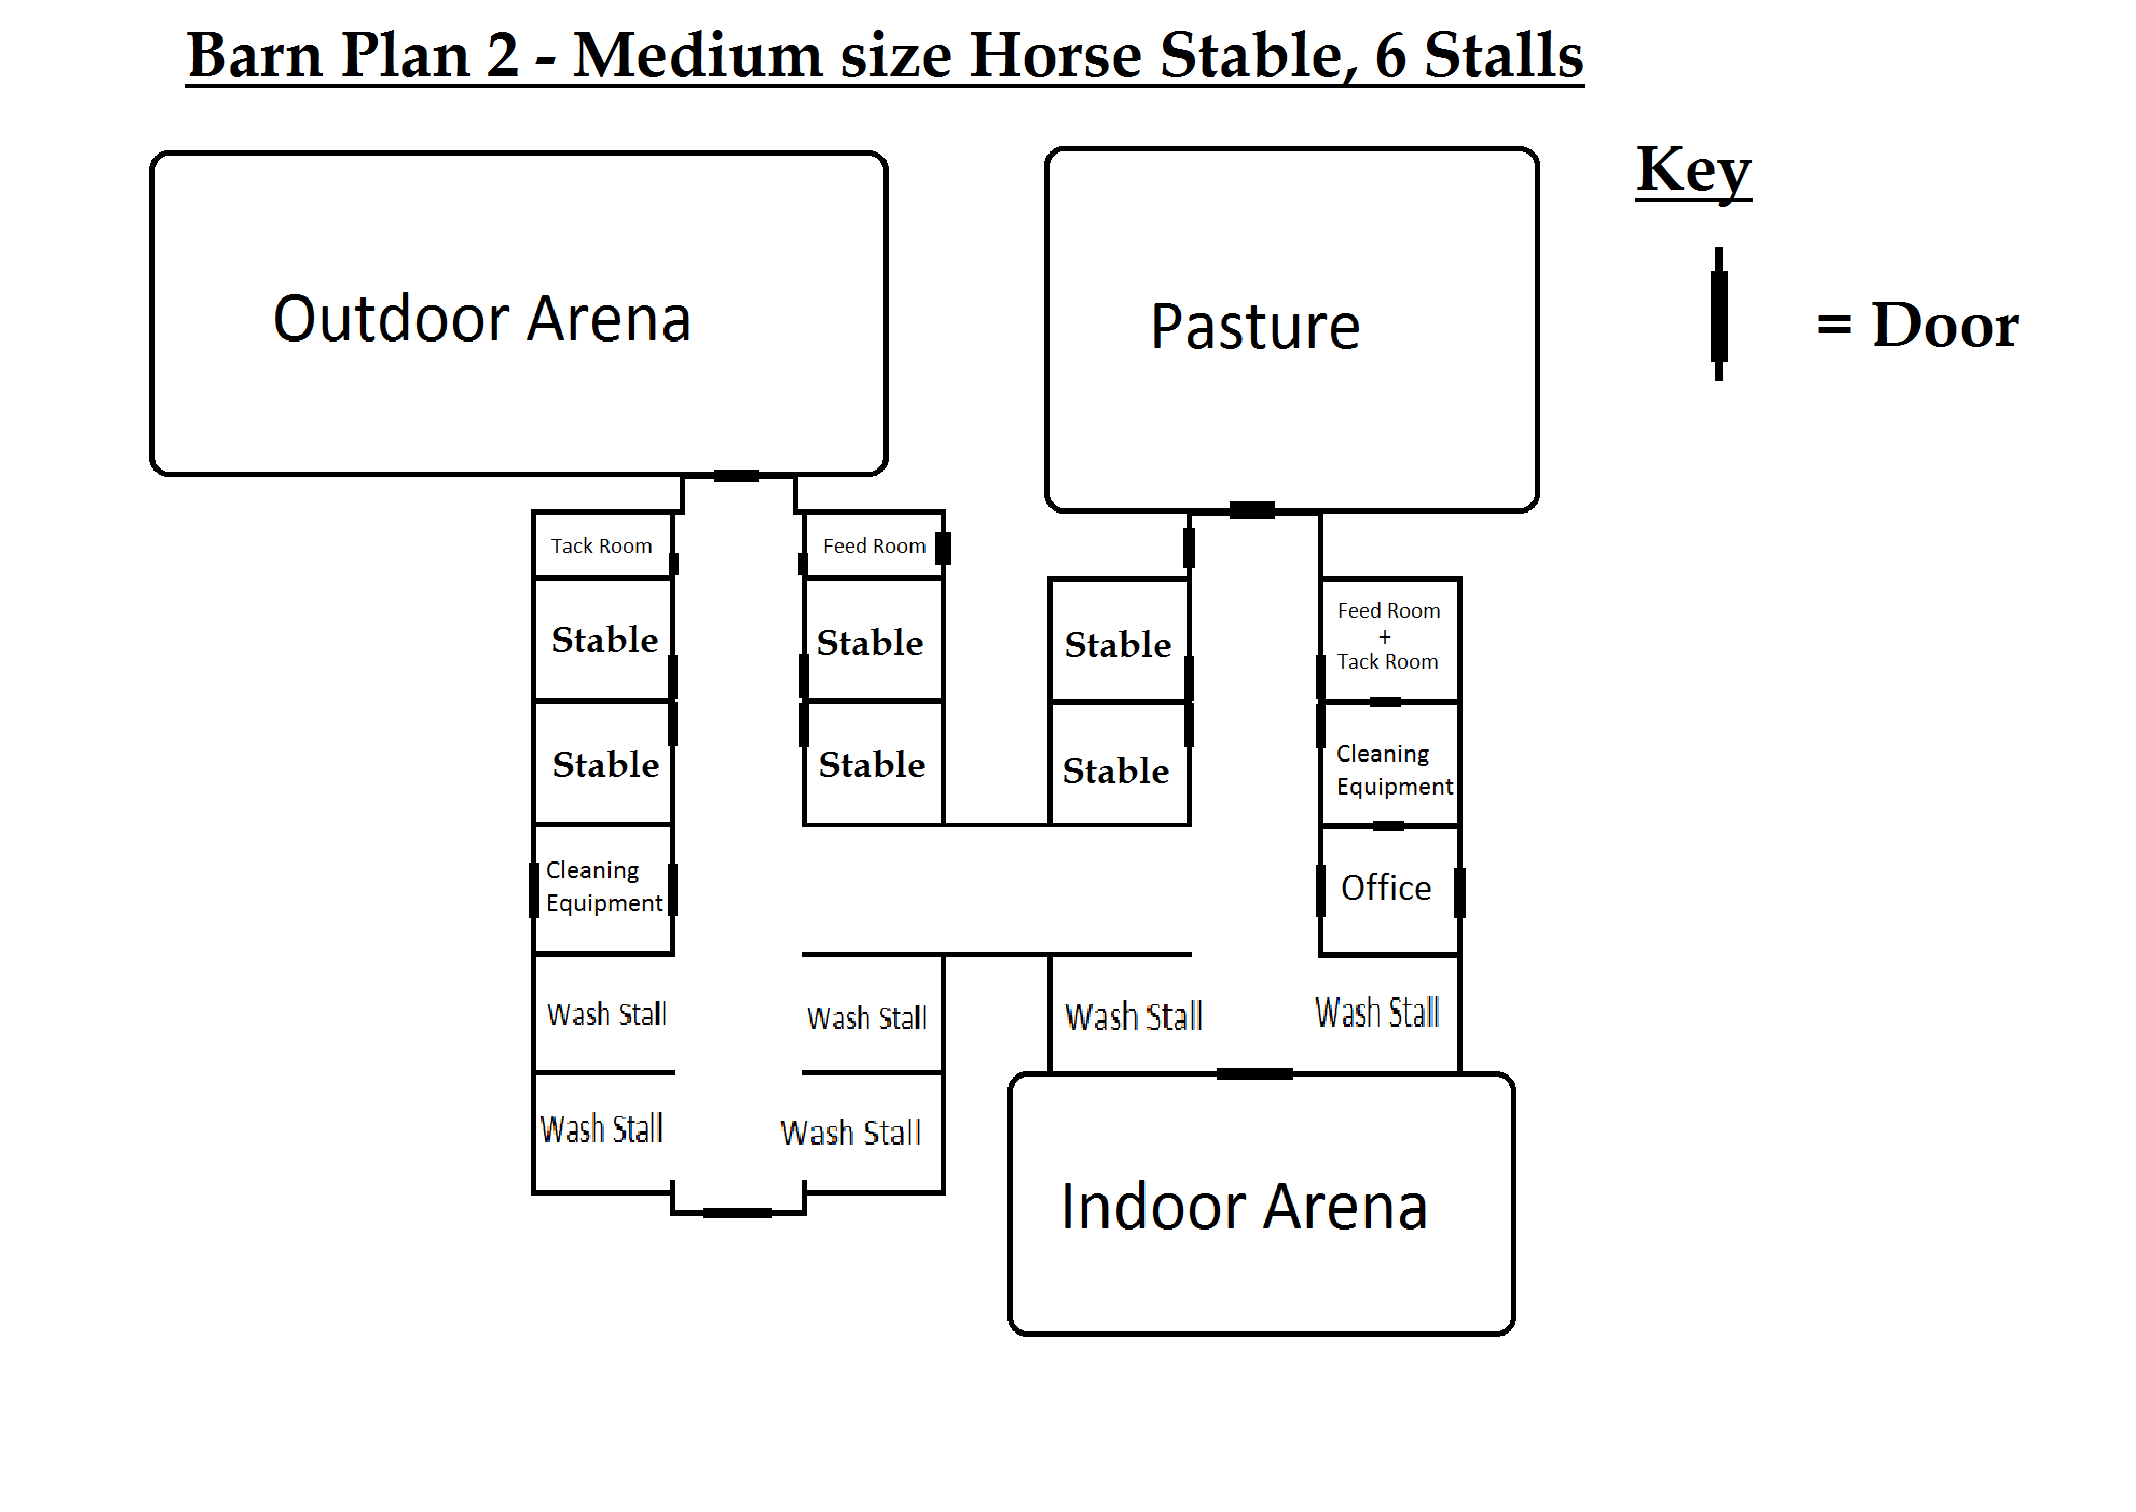 6 stall horse barn floor plans for Barn layouts